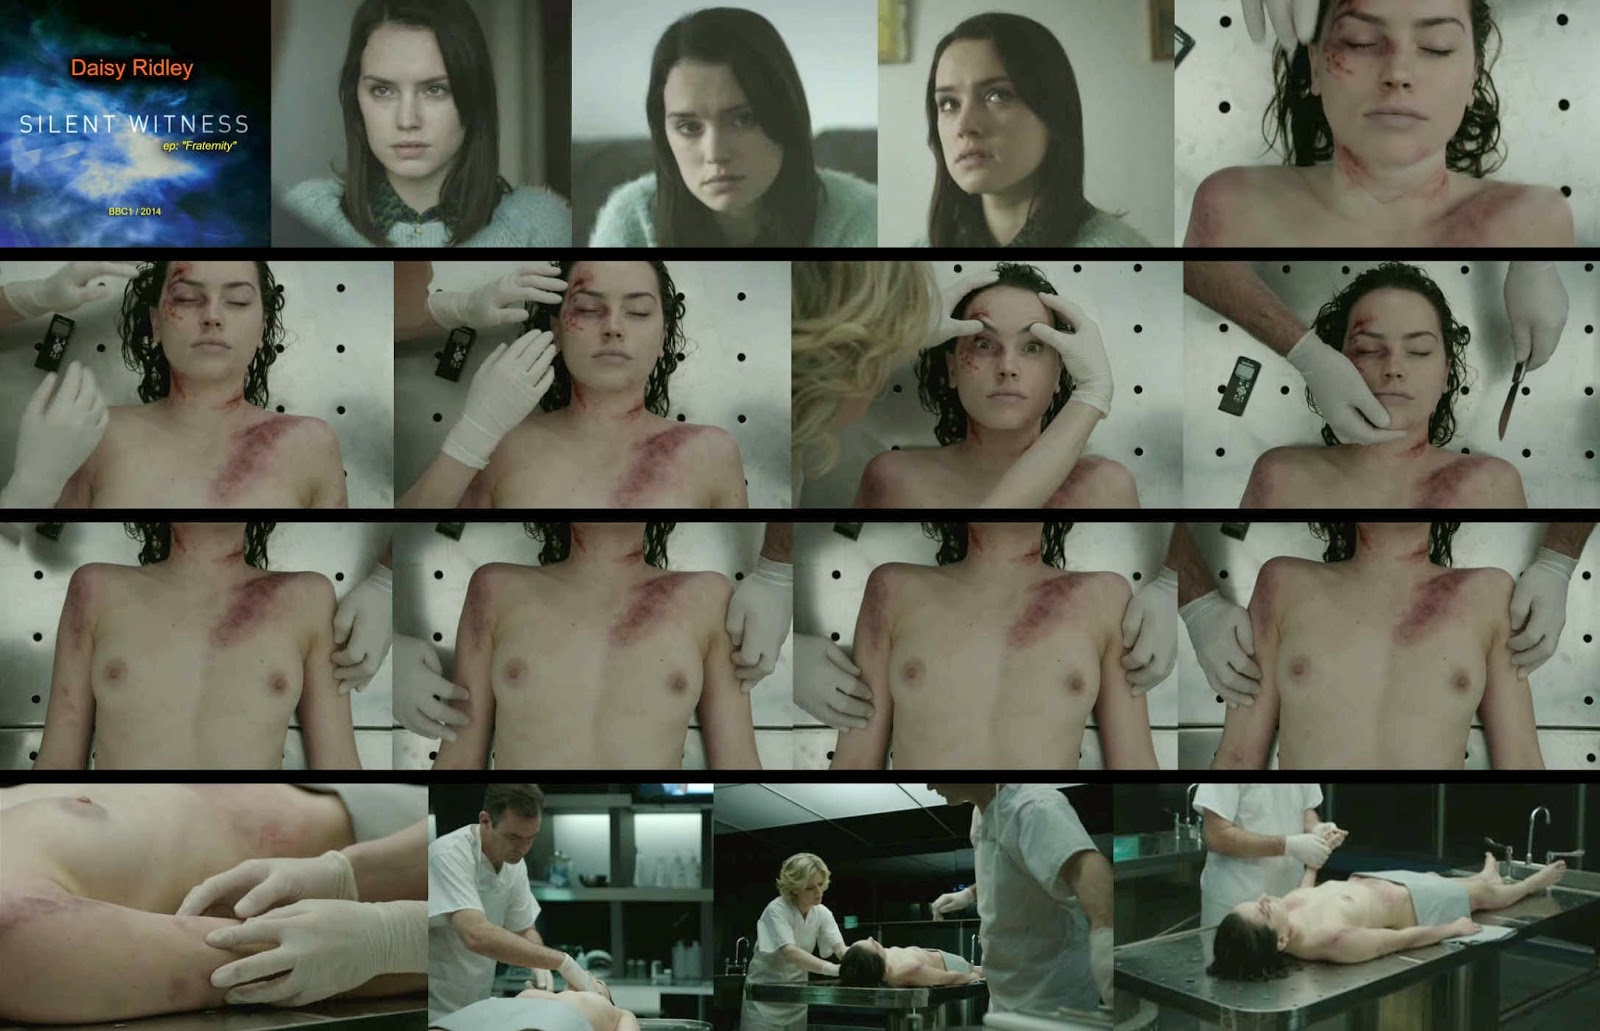 silent witness daisy ridley